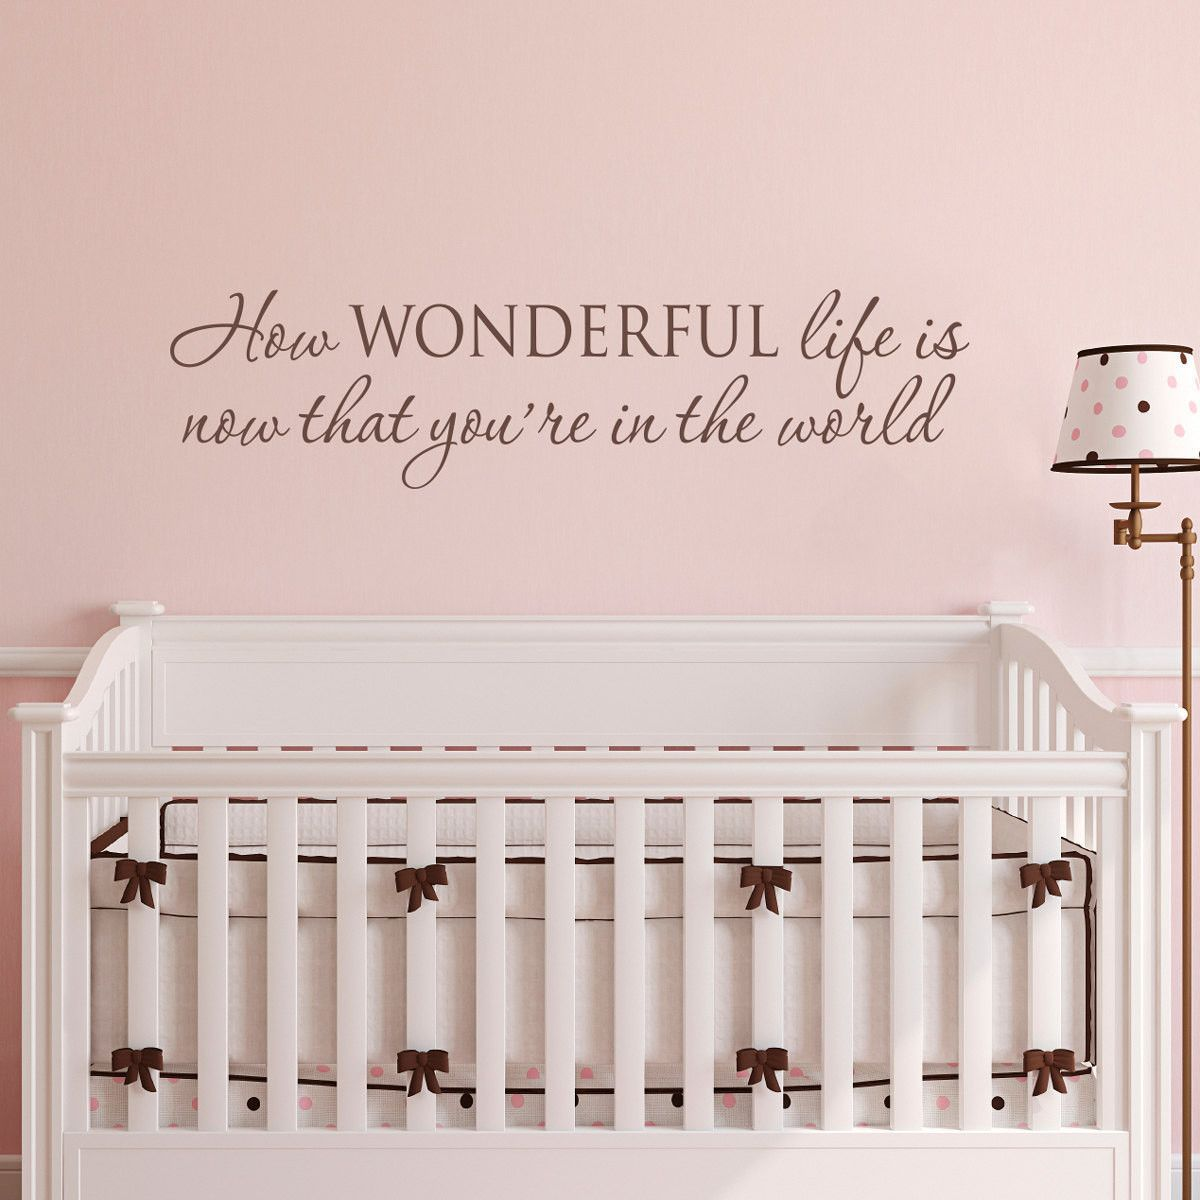 How Wonderful Now That You're in the Wall Decal - Large